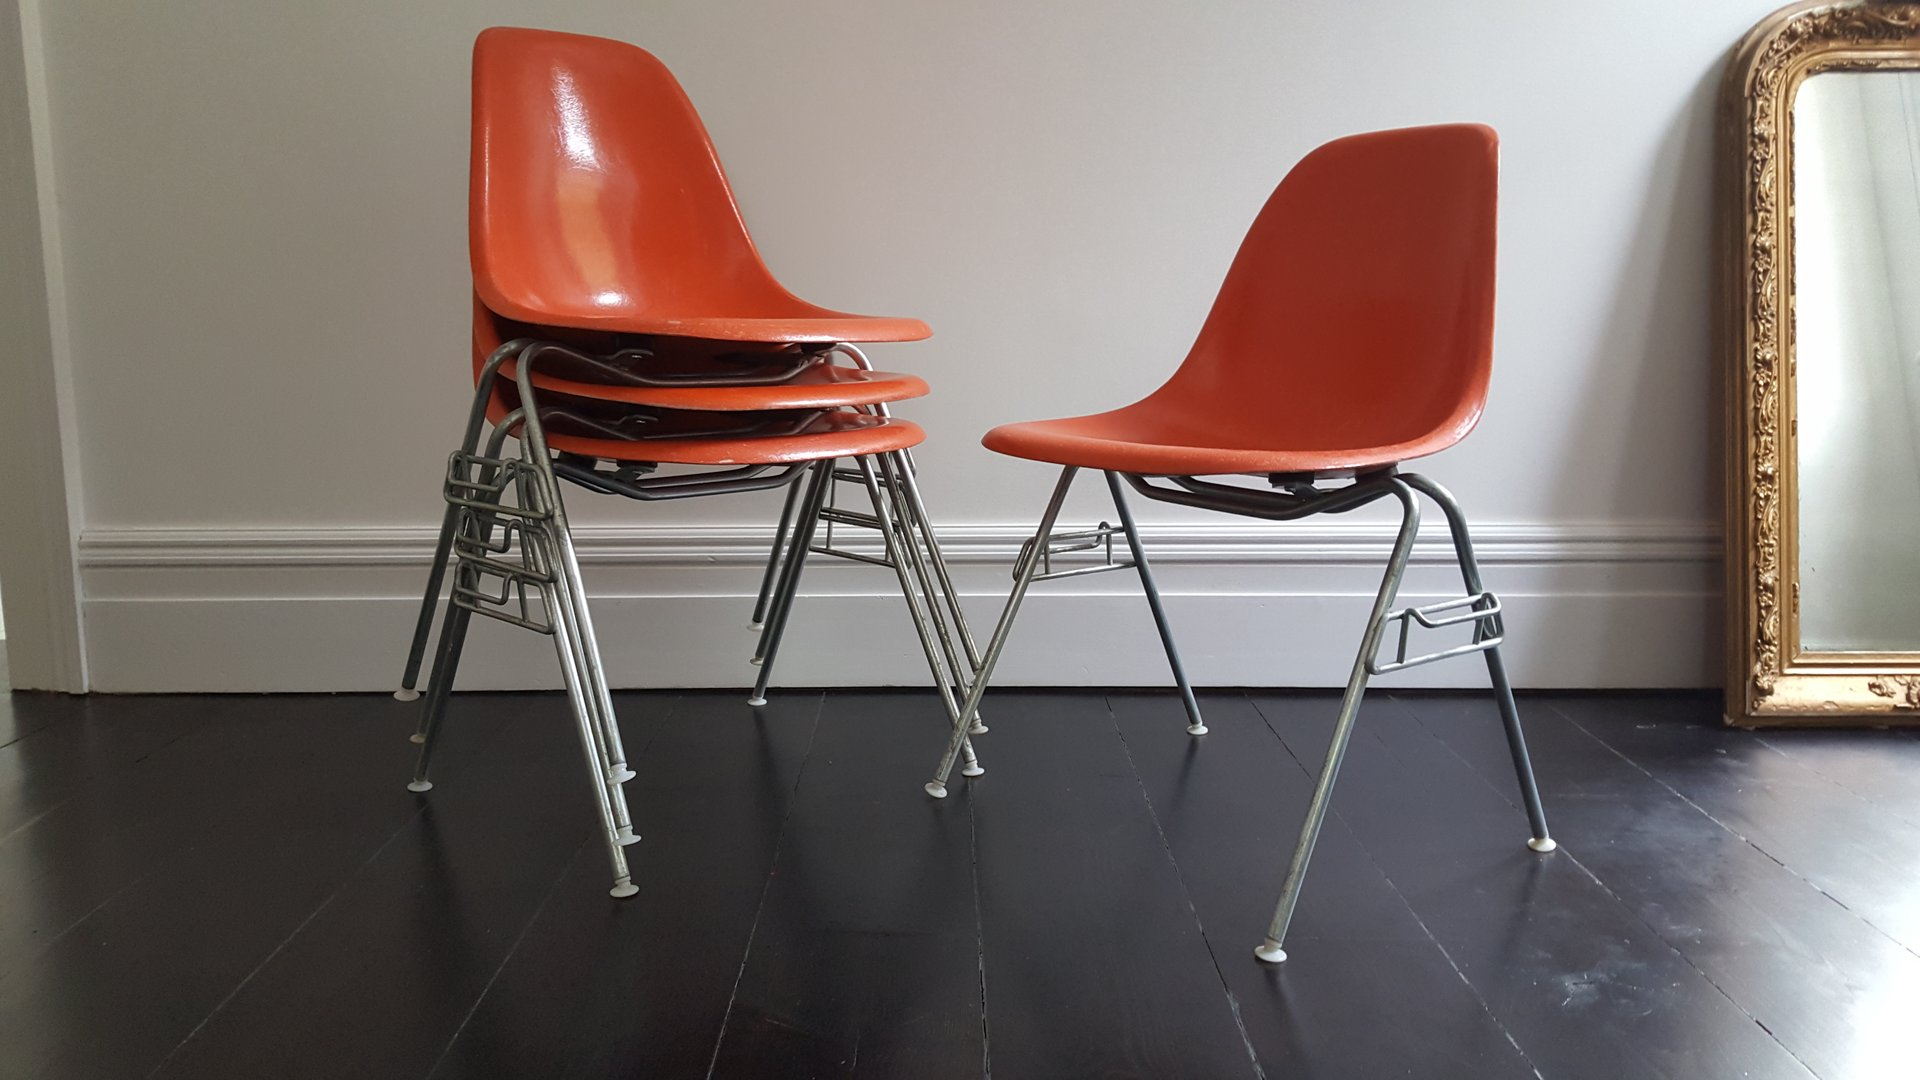 Vintage dss fiberglass shell chairs by charles ray eames for 4 chaises eames